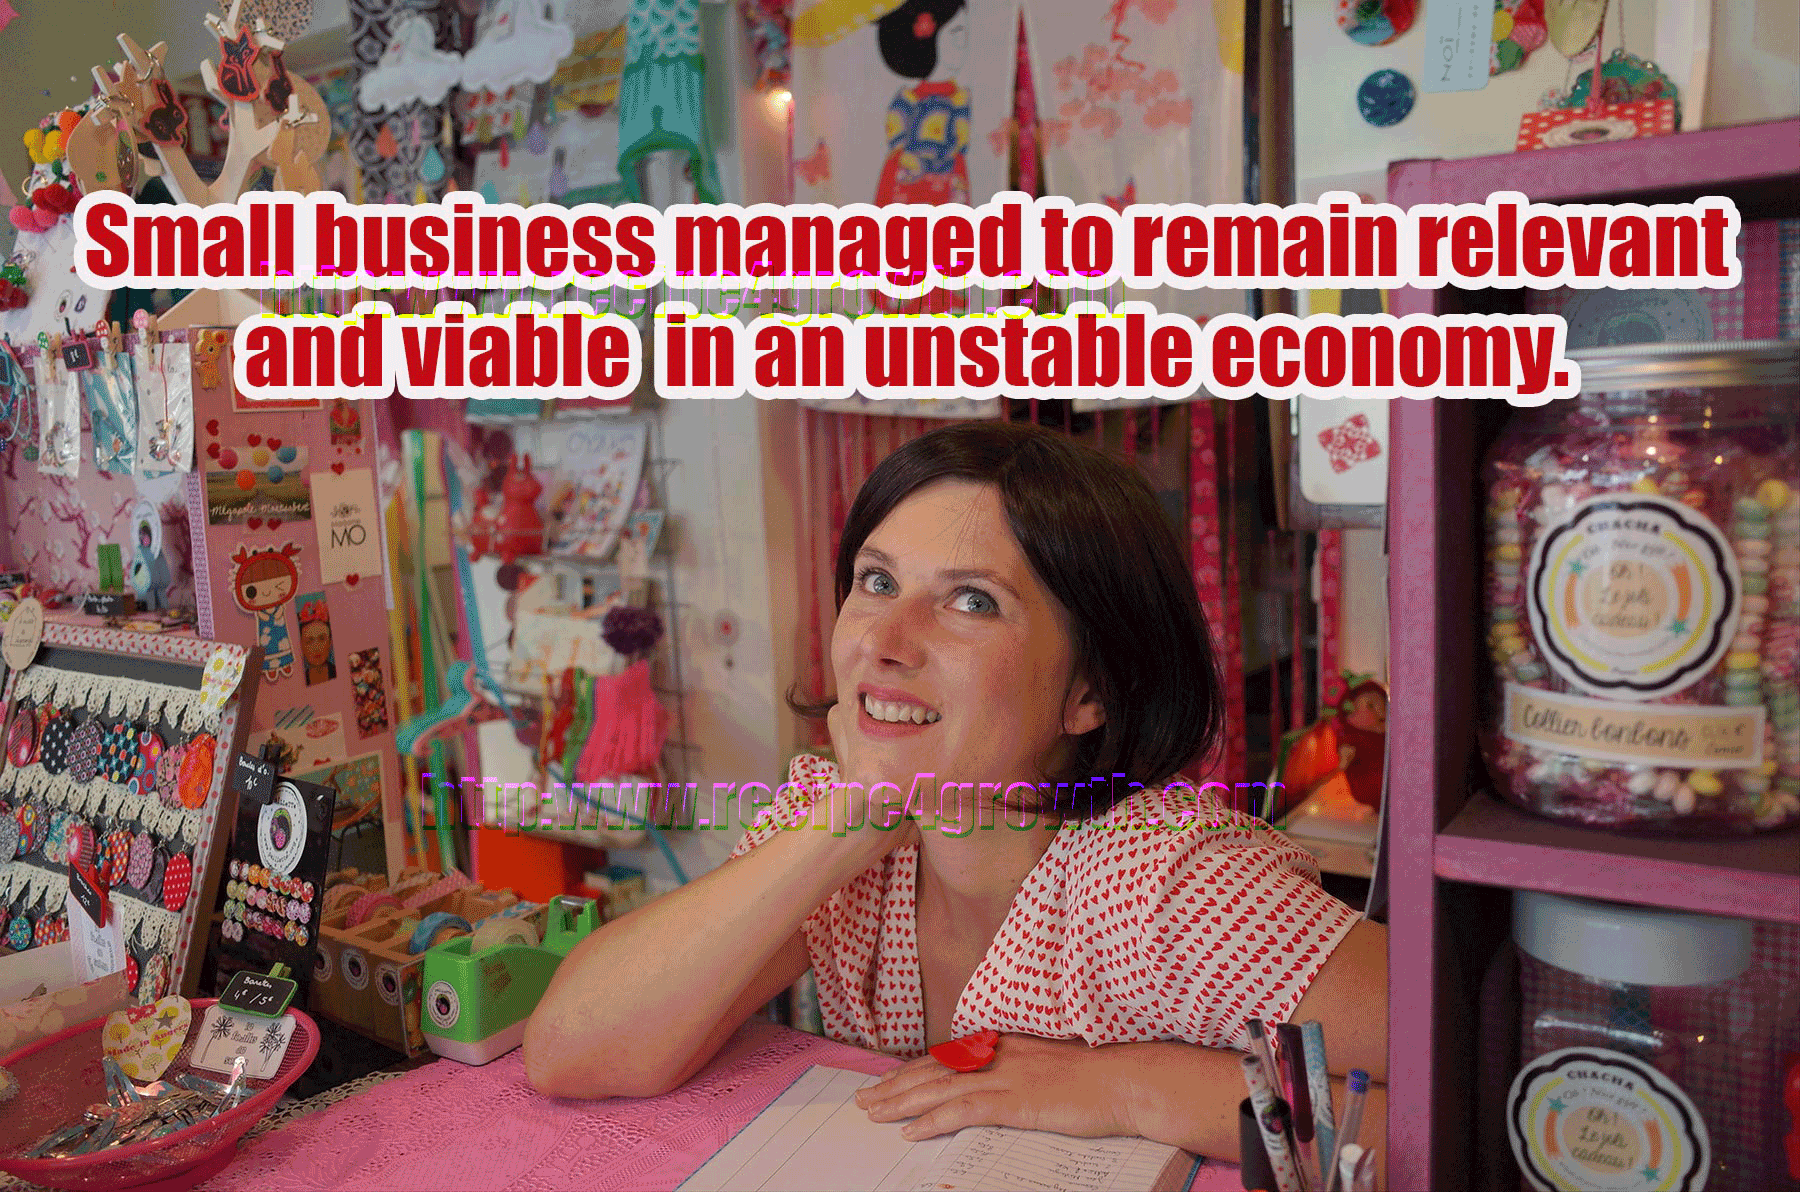 small business growth despite the harsh economy